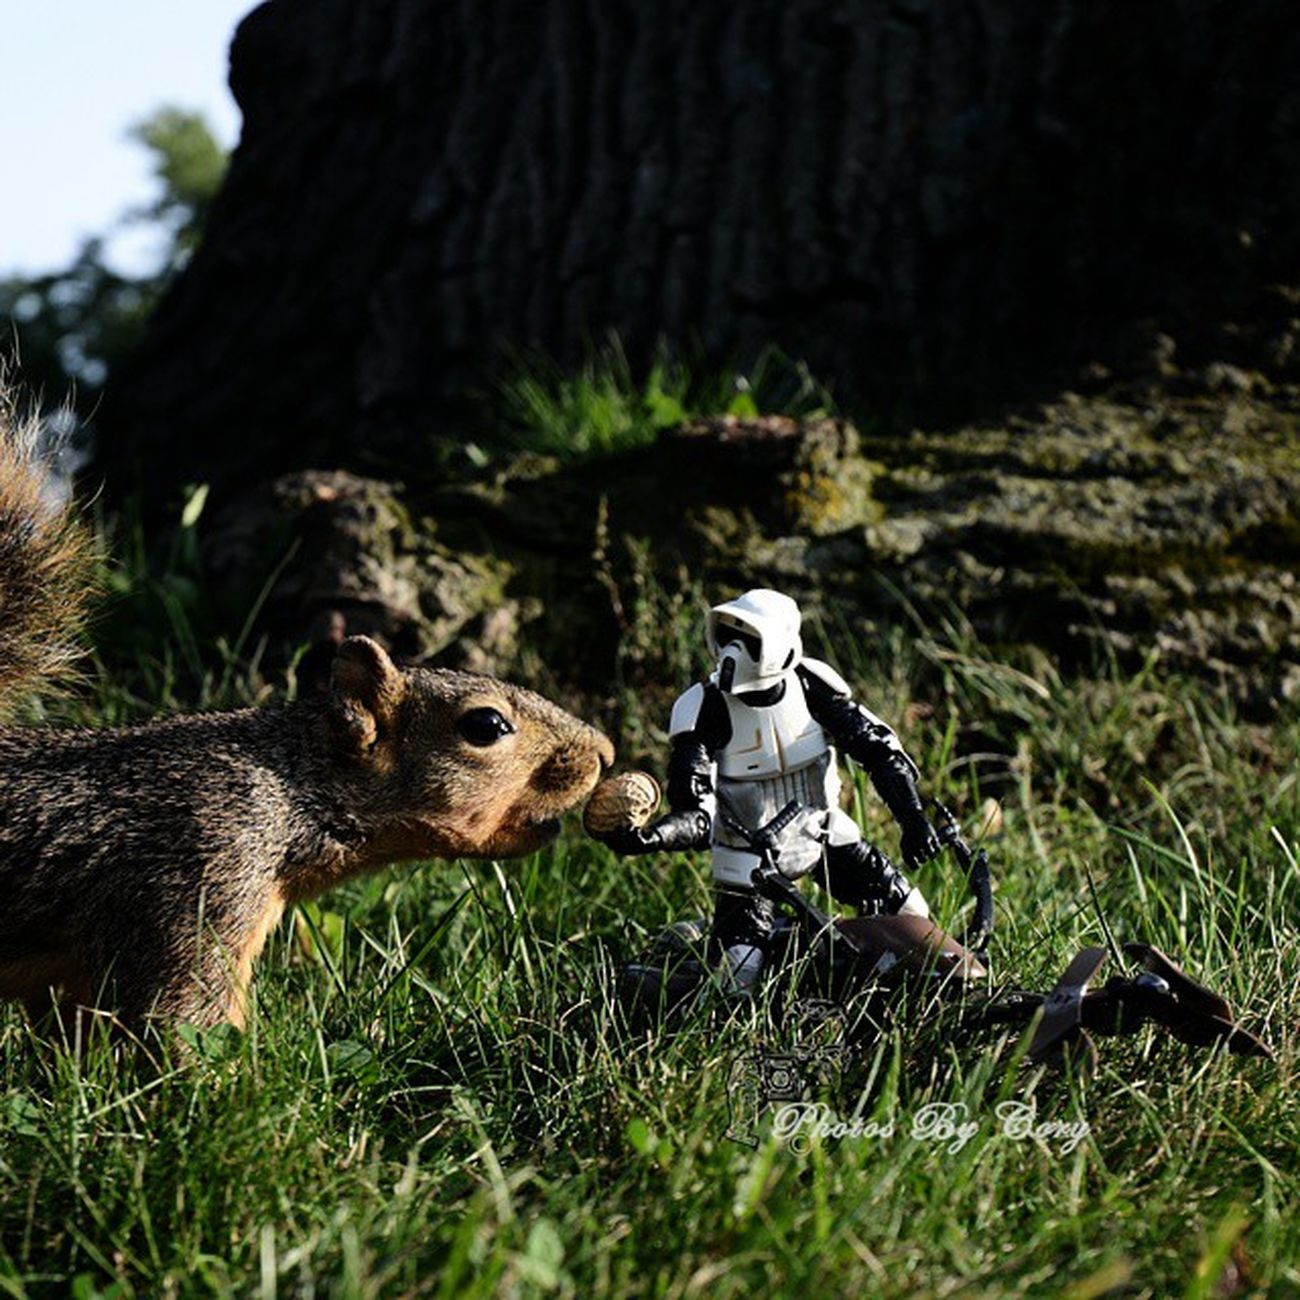 Sometimes being nice to the locals insures they won't strech vines across your path later. Lessonsfromascouttrooper Funwiththesquirrels Scouttrooper